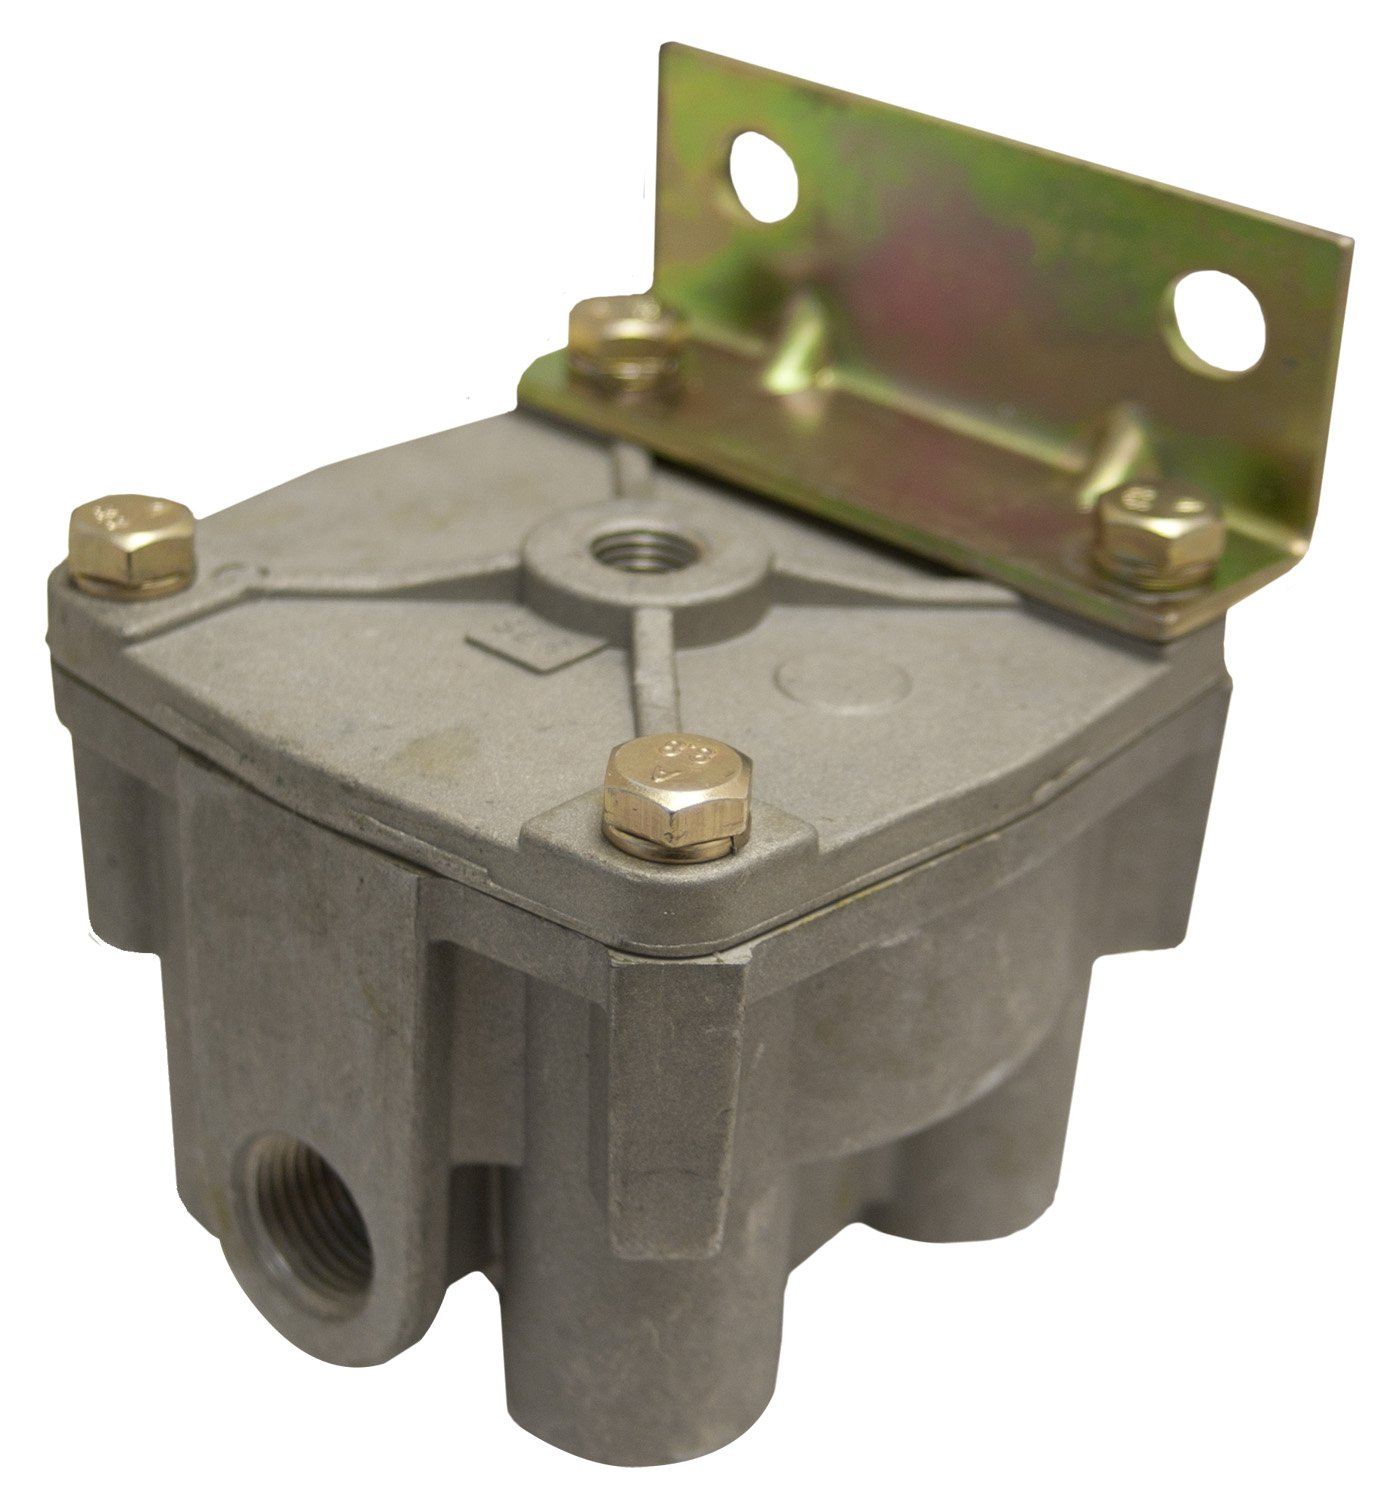 Bendix Style R12 Valve w/Vertical Delivery Ports # 102626